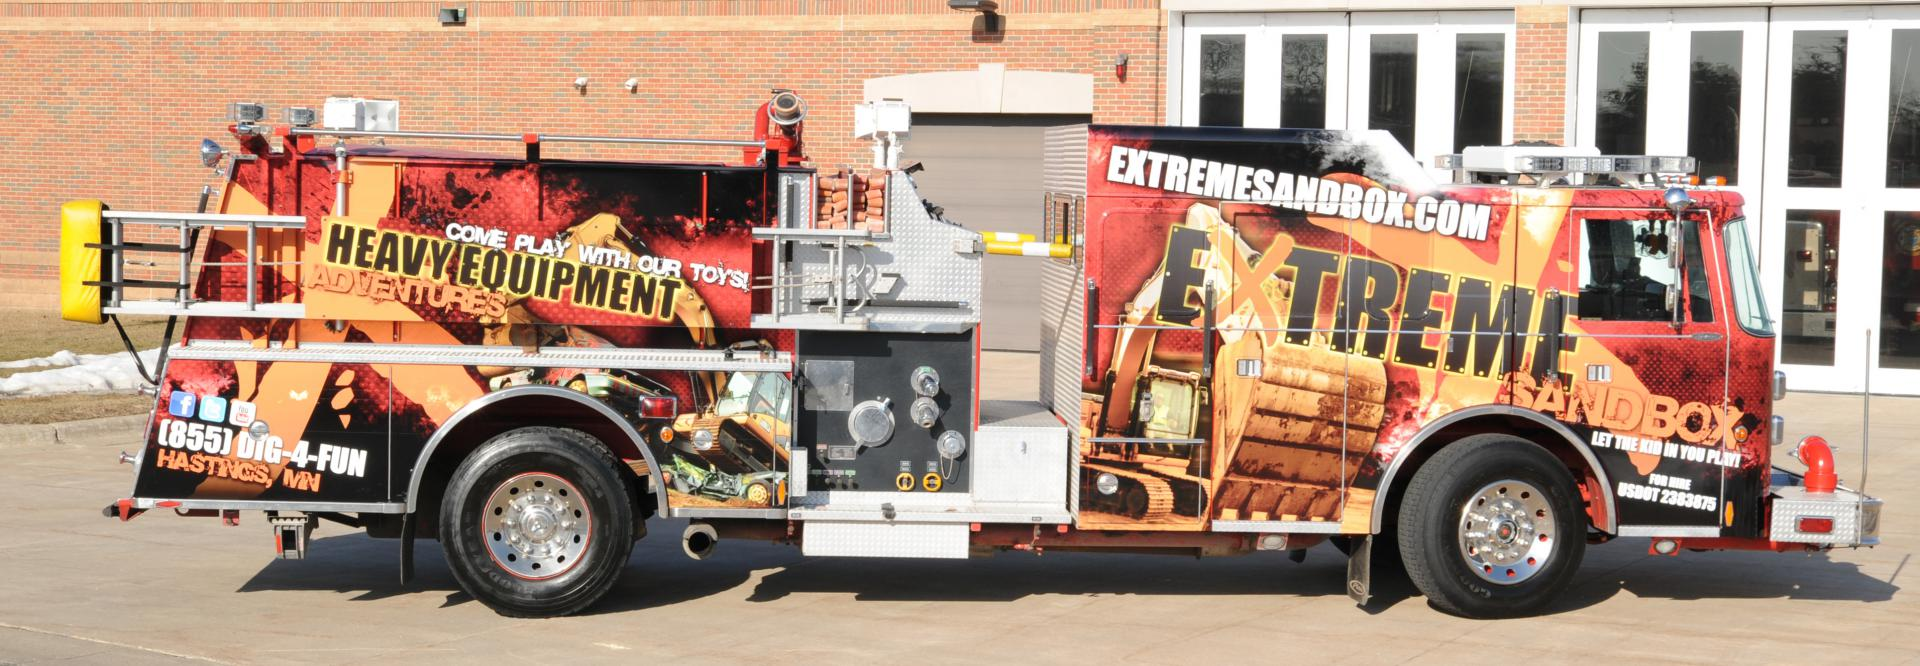 fire truck packages extreme sandboxextreme sandbox